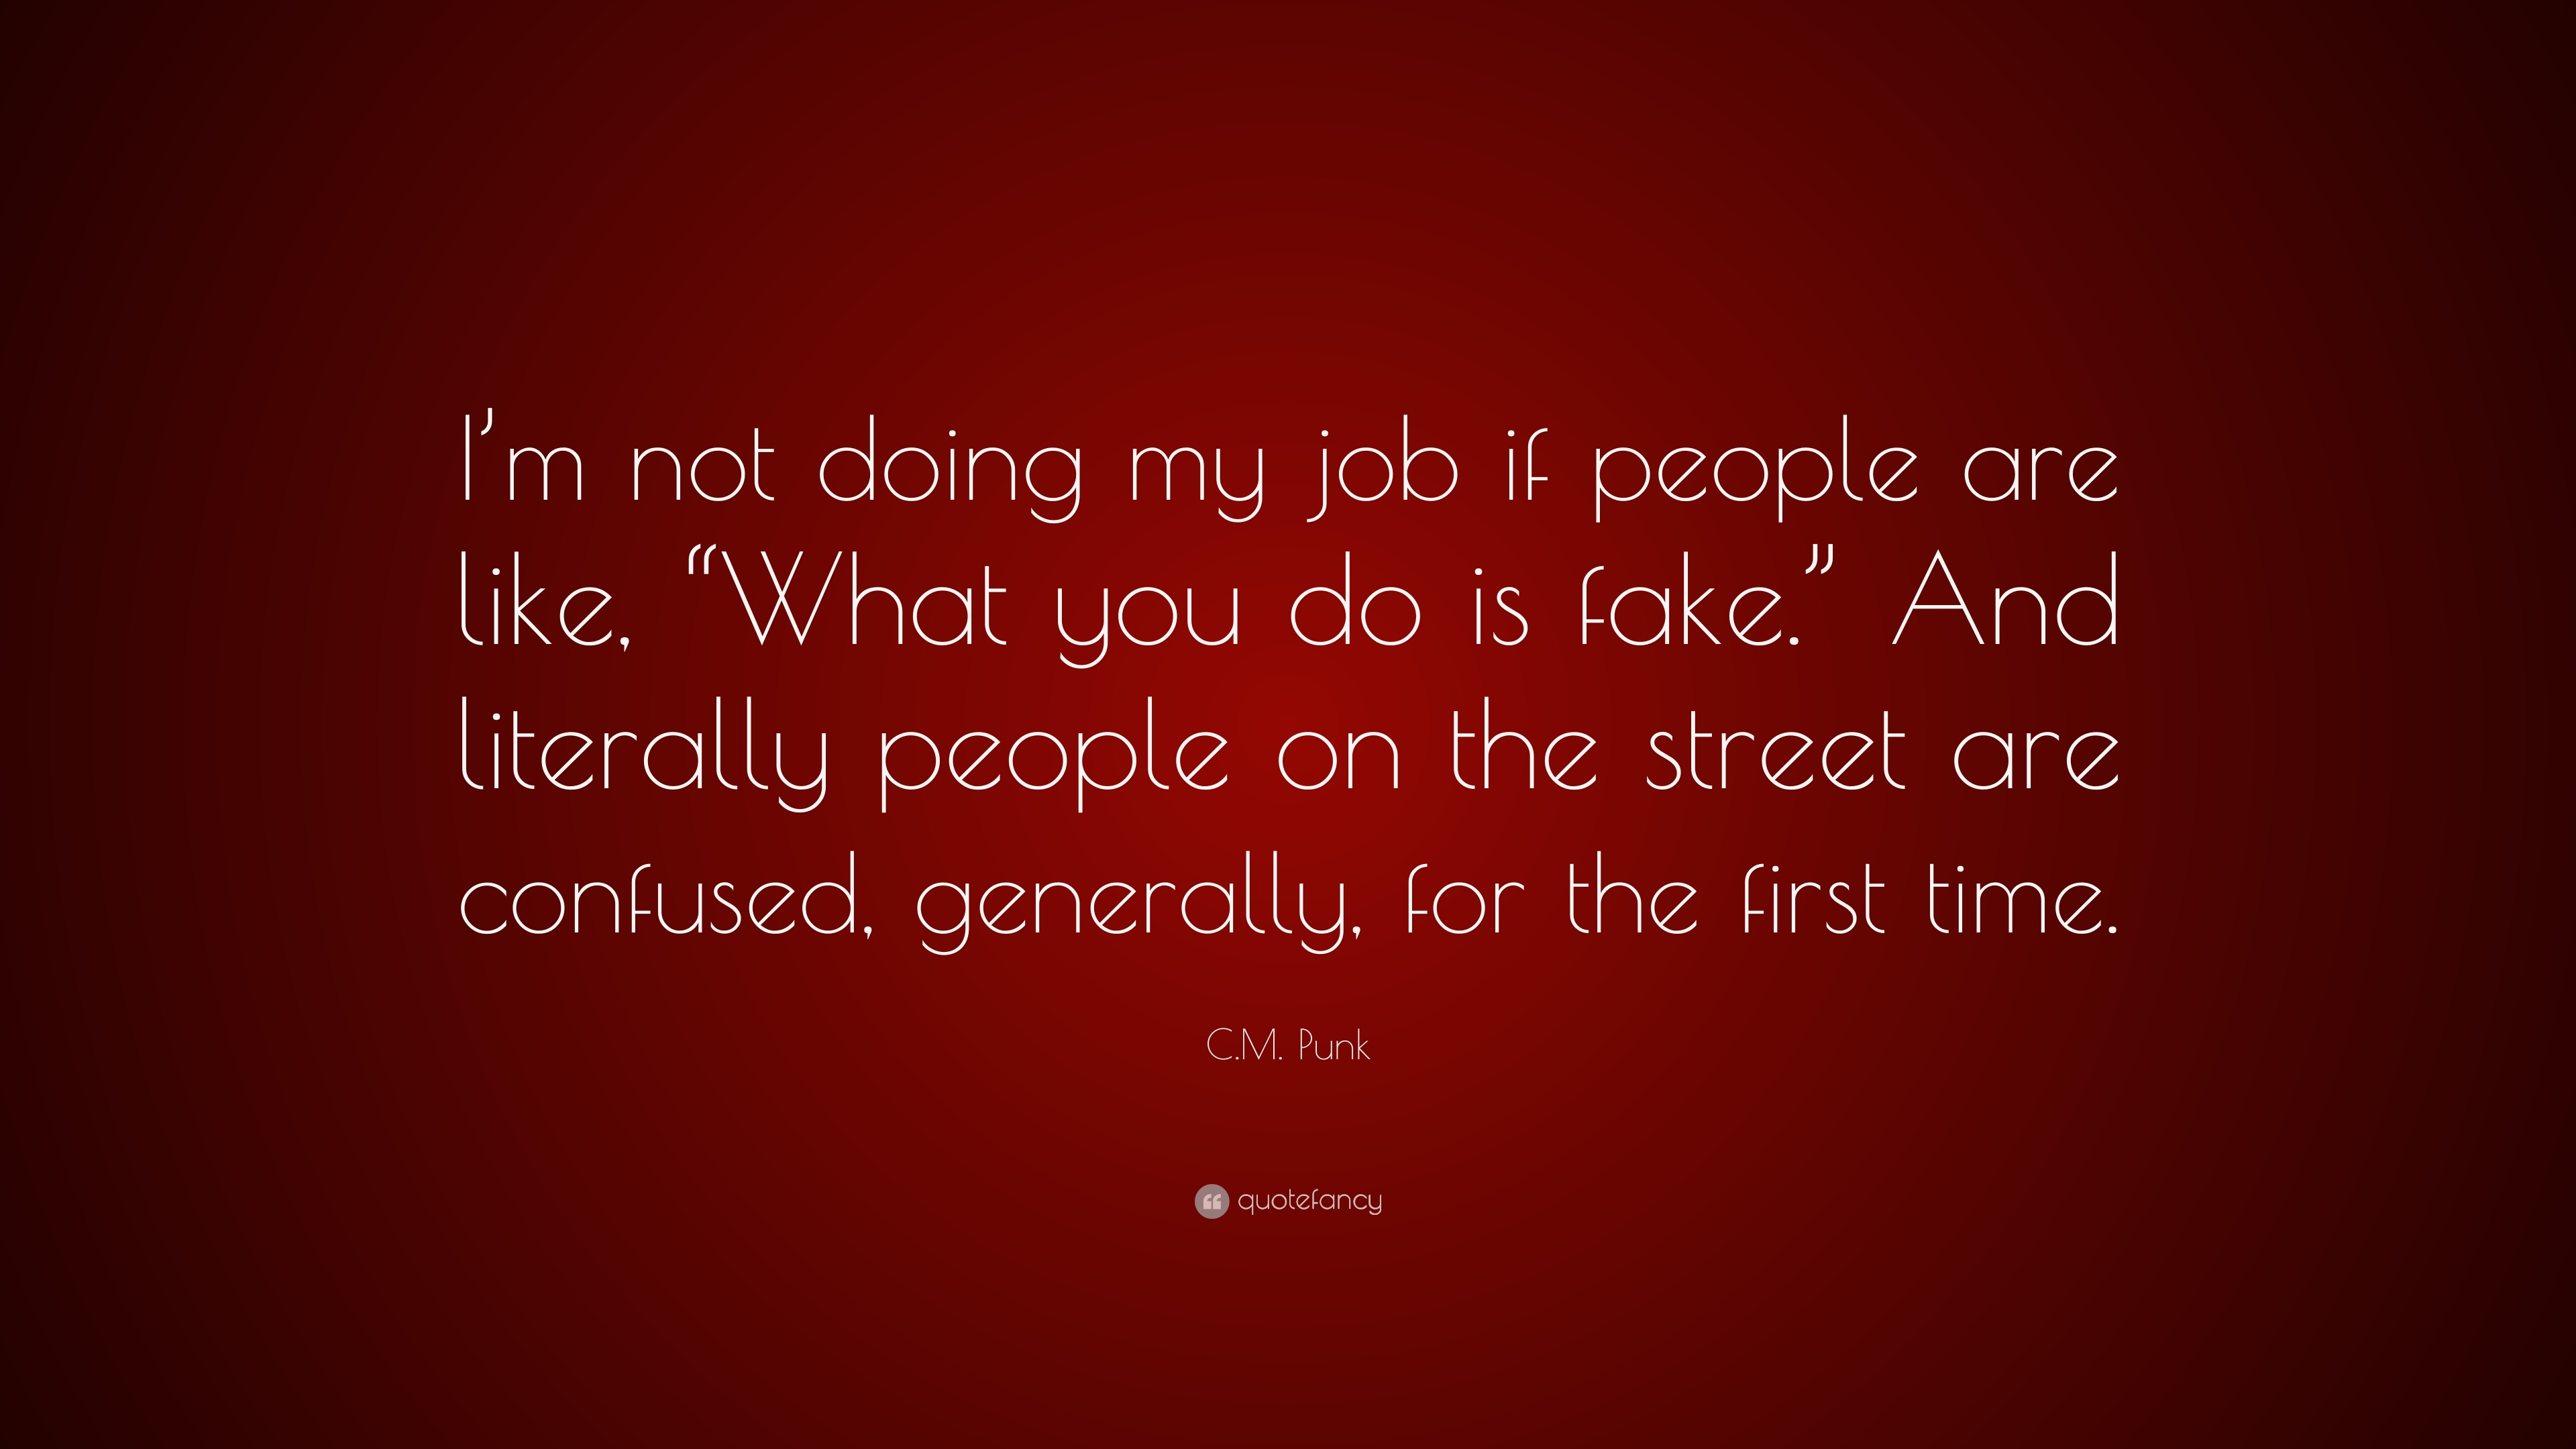 Cm punk quote im not doing my job if people are like what cm punk quote im not doing my job if people are like voltagebd Images